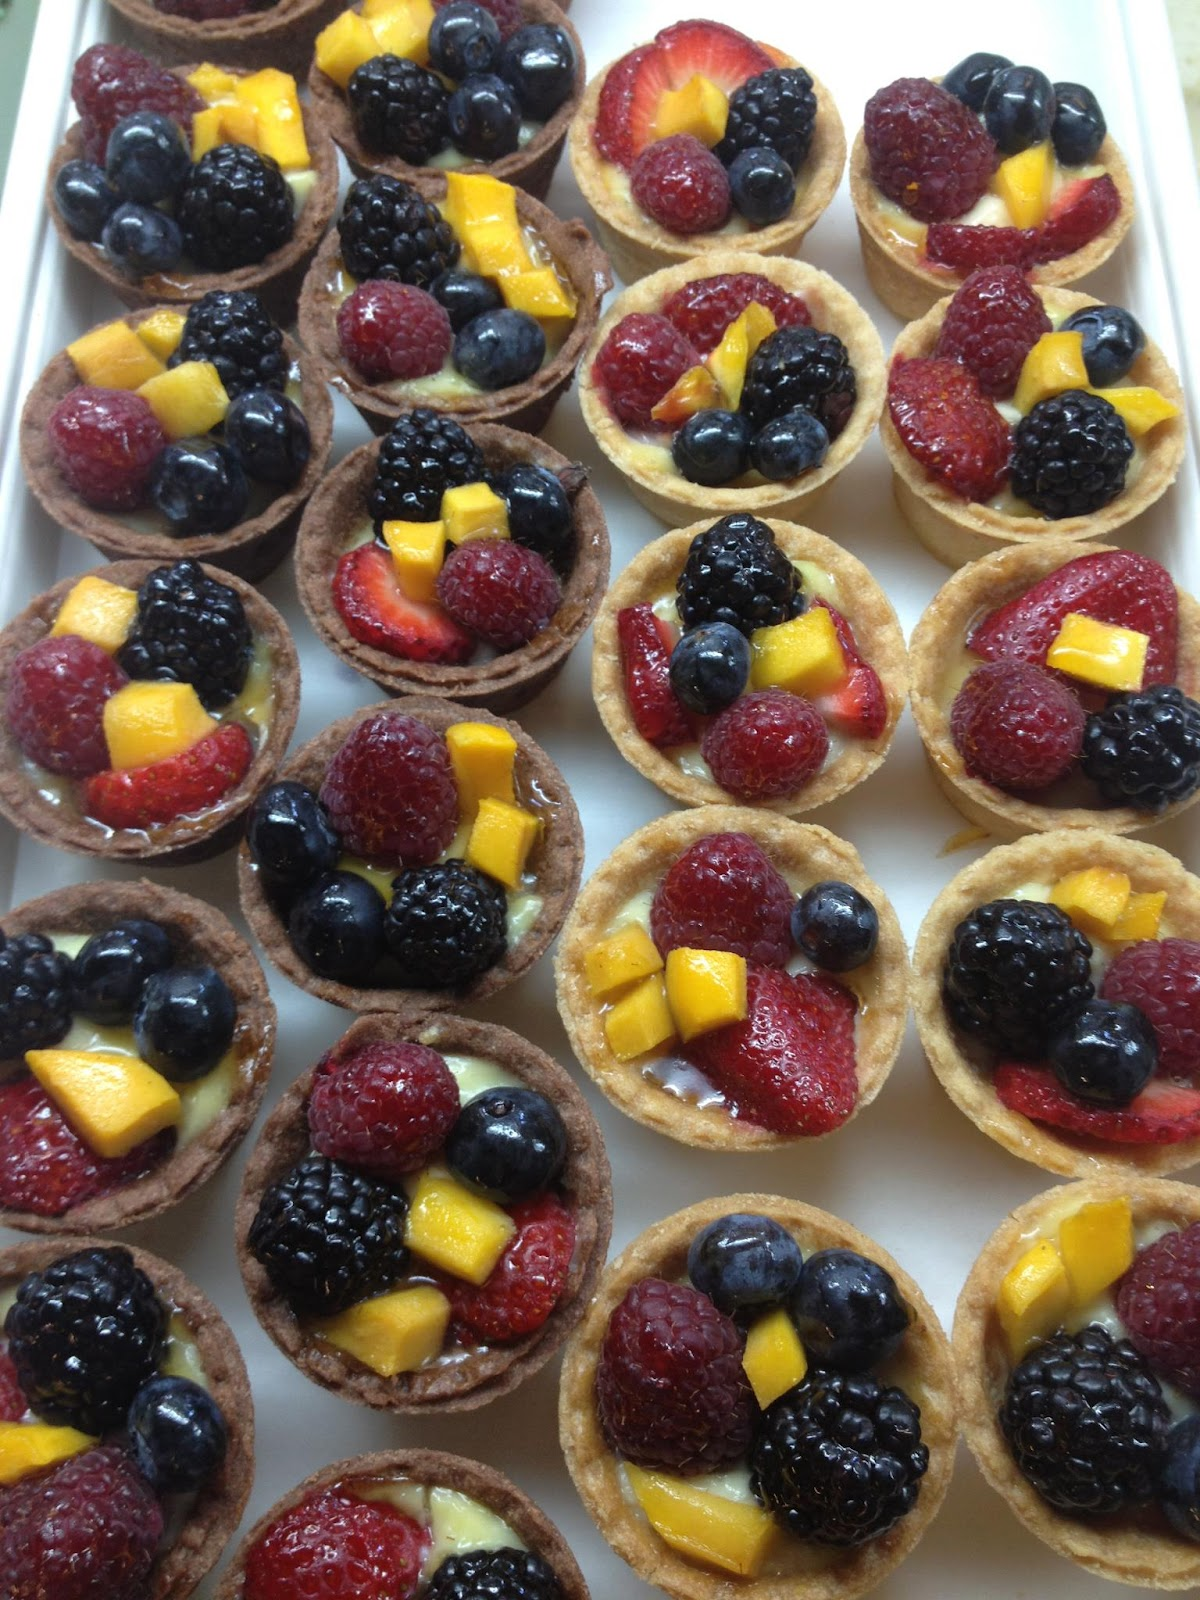 Each fruit tart is made with a flaky butter crust, filled with vanilla ...